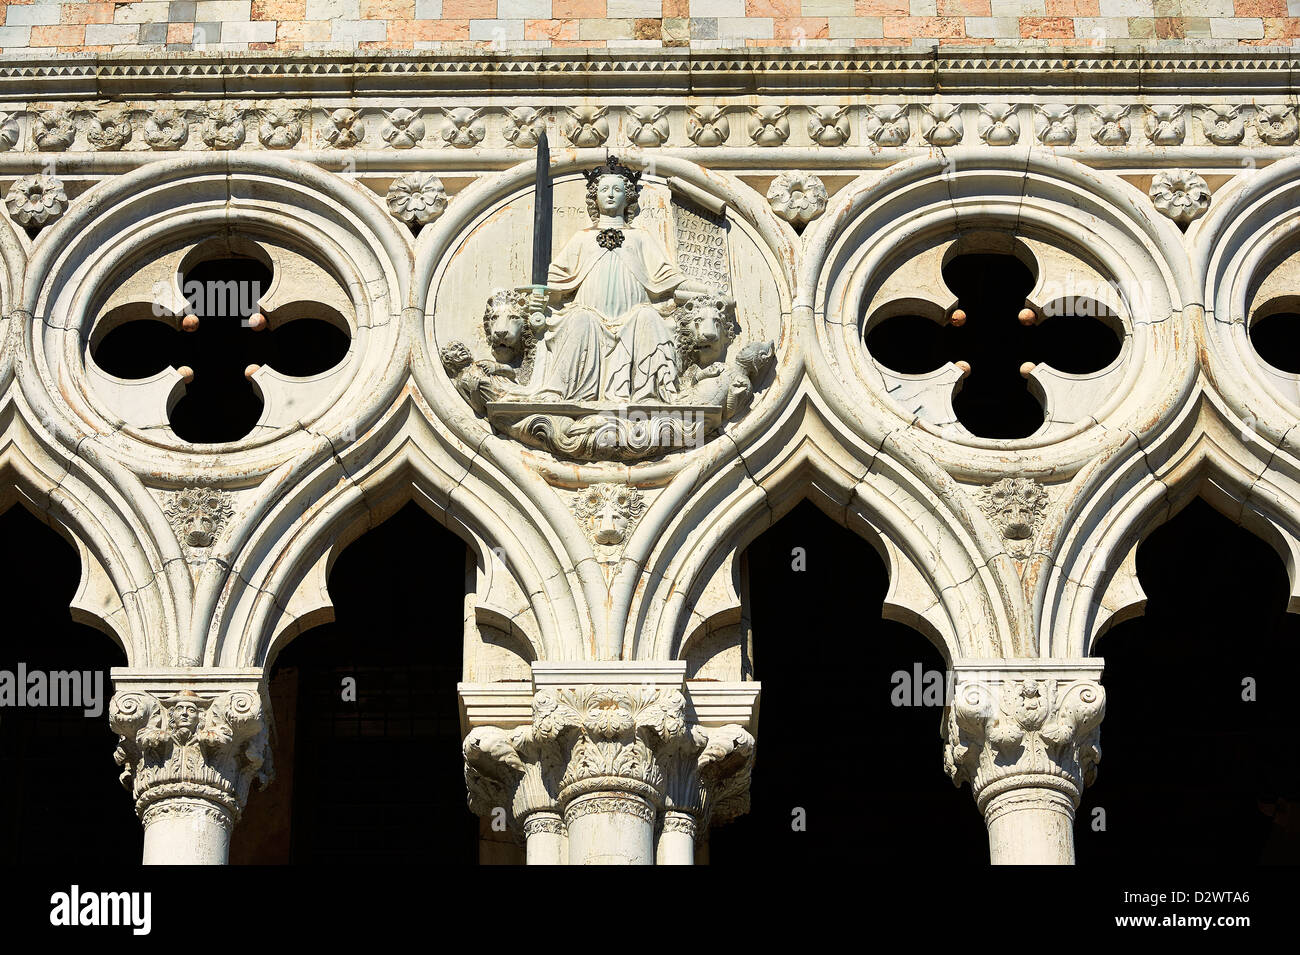 The 14th Century Gothic Style Architectural Details Of Doges Palace On St Marks Square